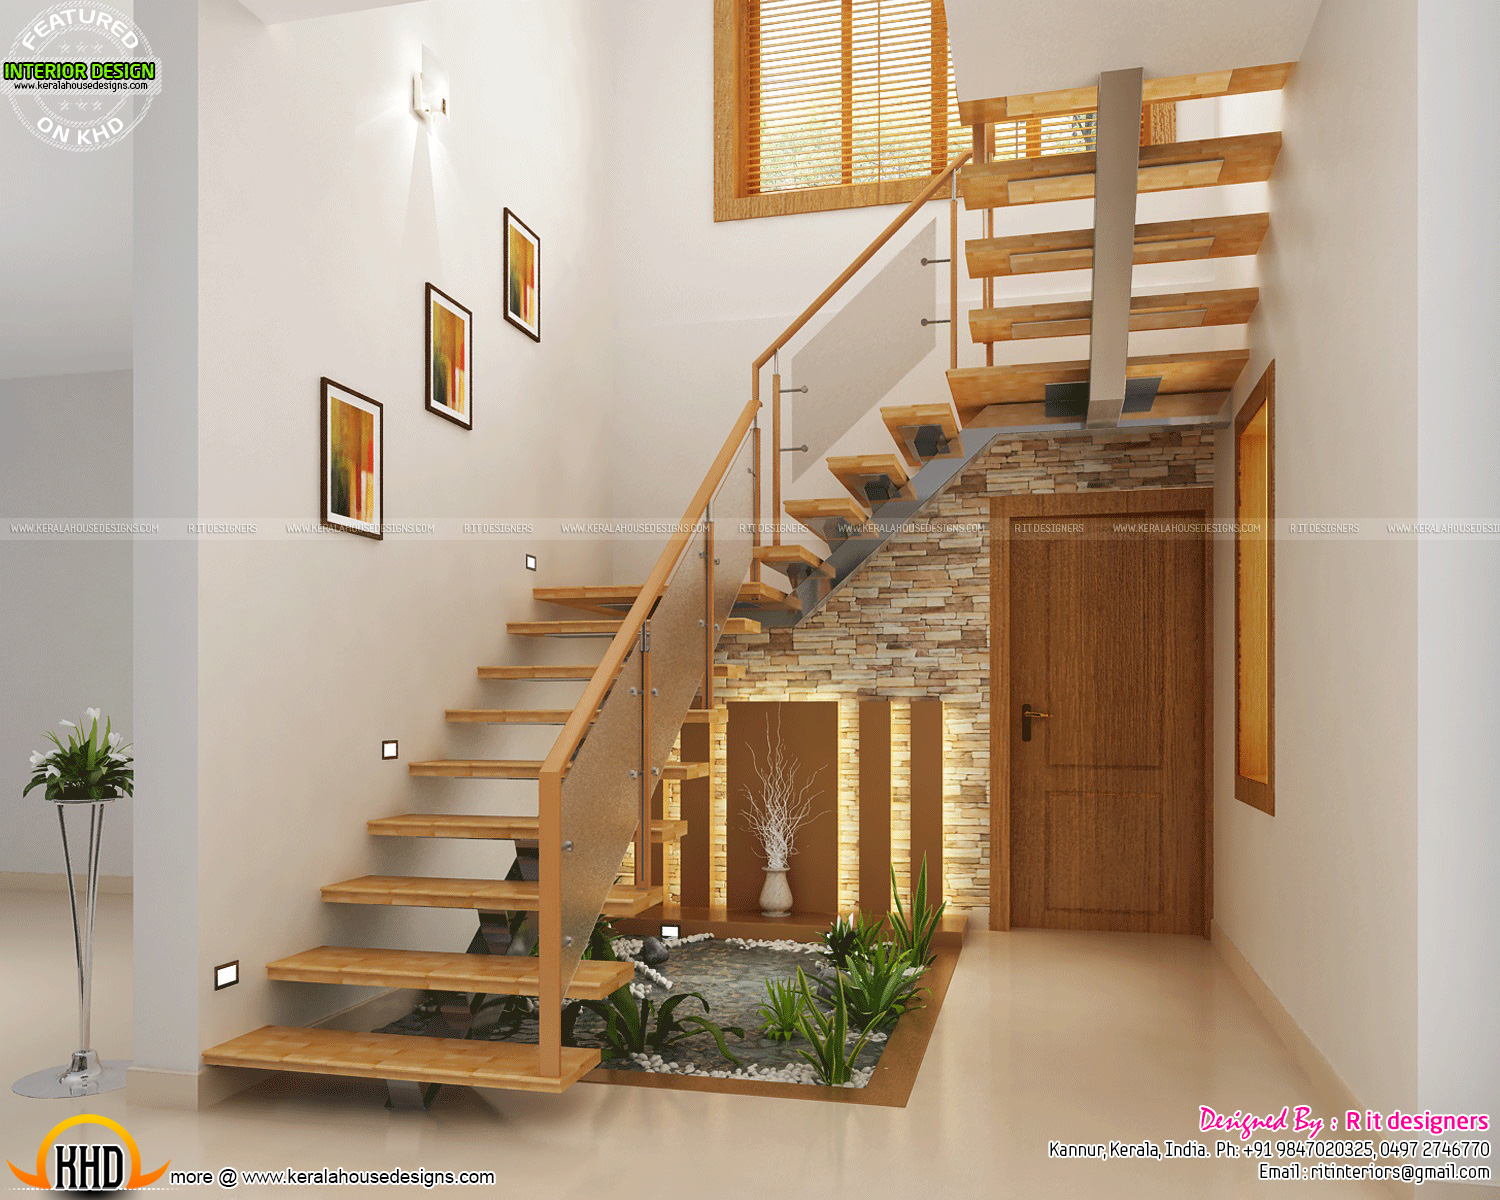 Under stair design wooden stair kitchen and living Home interior ideas